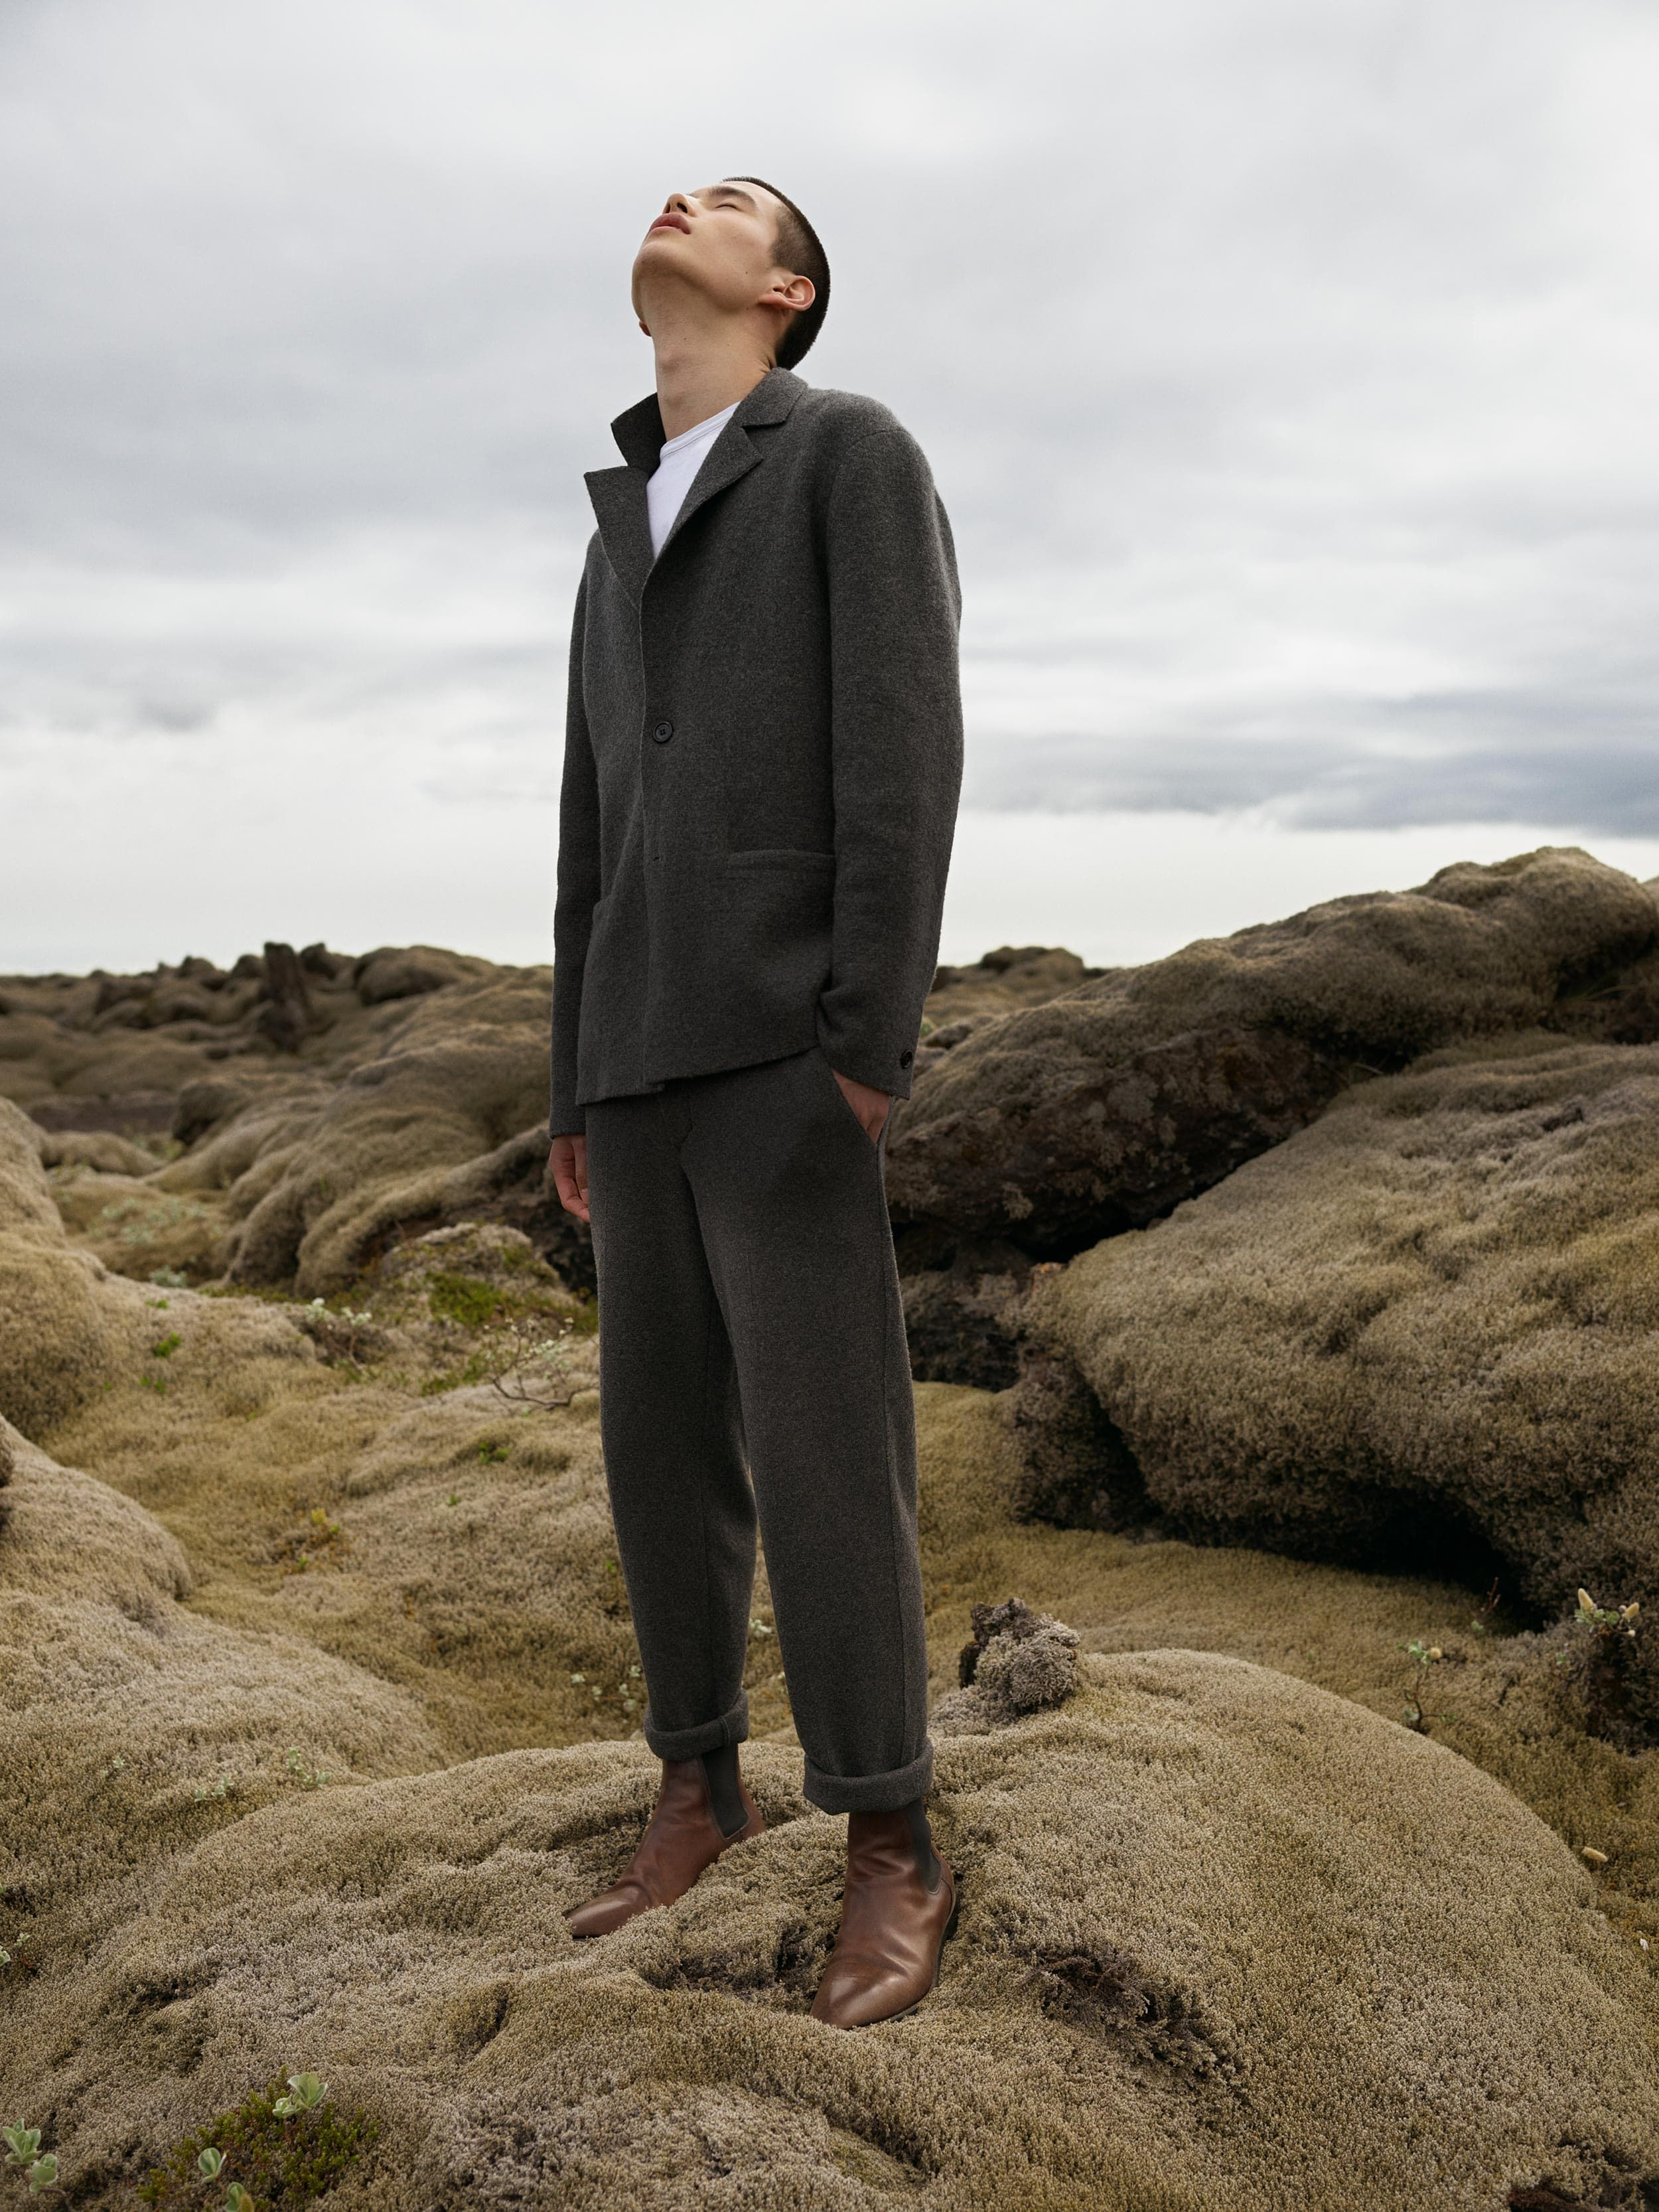 Velvet Desert - Berluti Fall/Winter 2018 collection